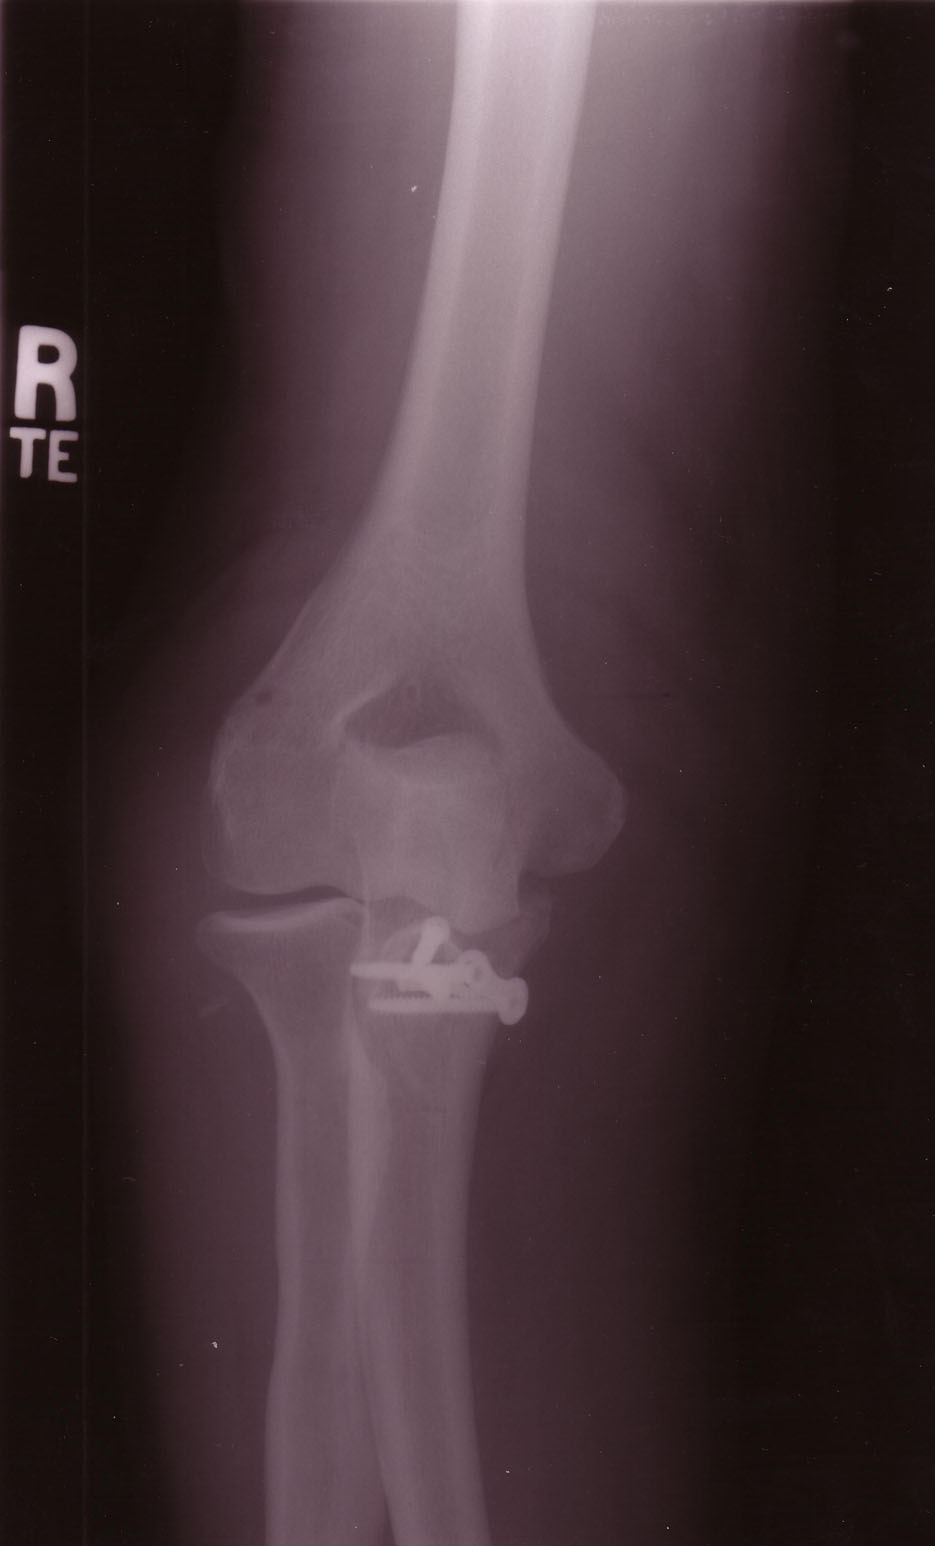 Failed internal fixation (plate and screws) of comminuted fracture of the coronoid process